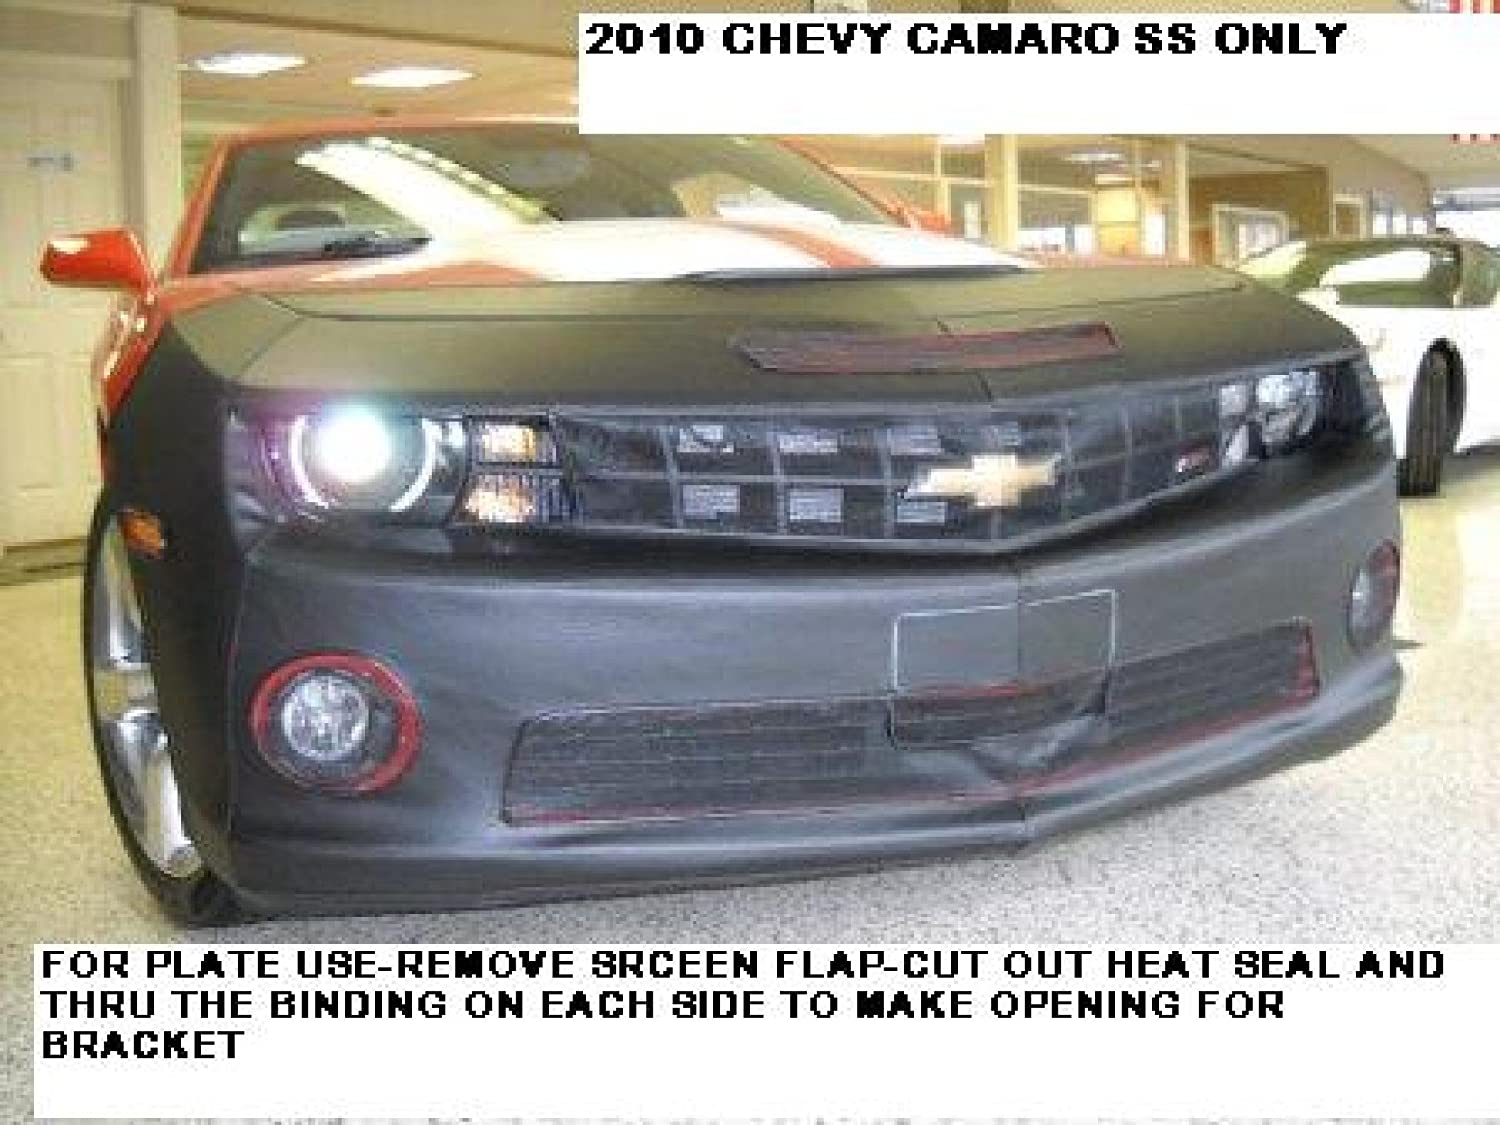 Lebra 2 piece Front End 1 year warranty Cover Mask a Bra Omaha Mall Black Chevy Camaro SS -